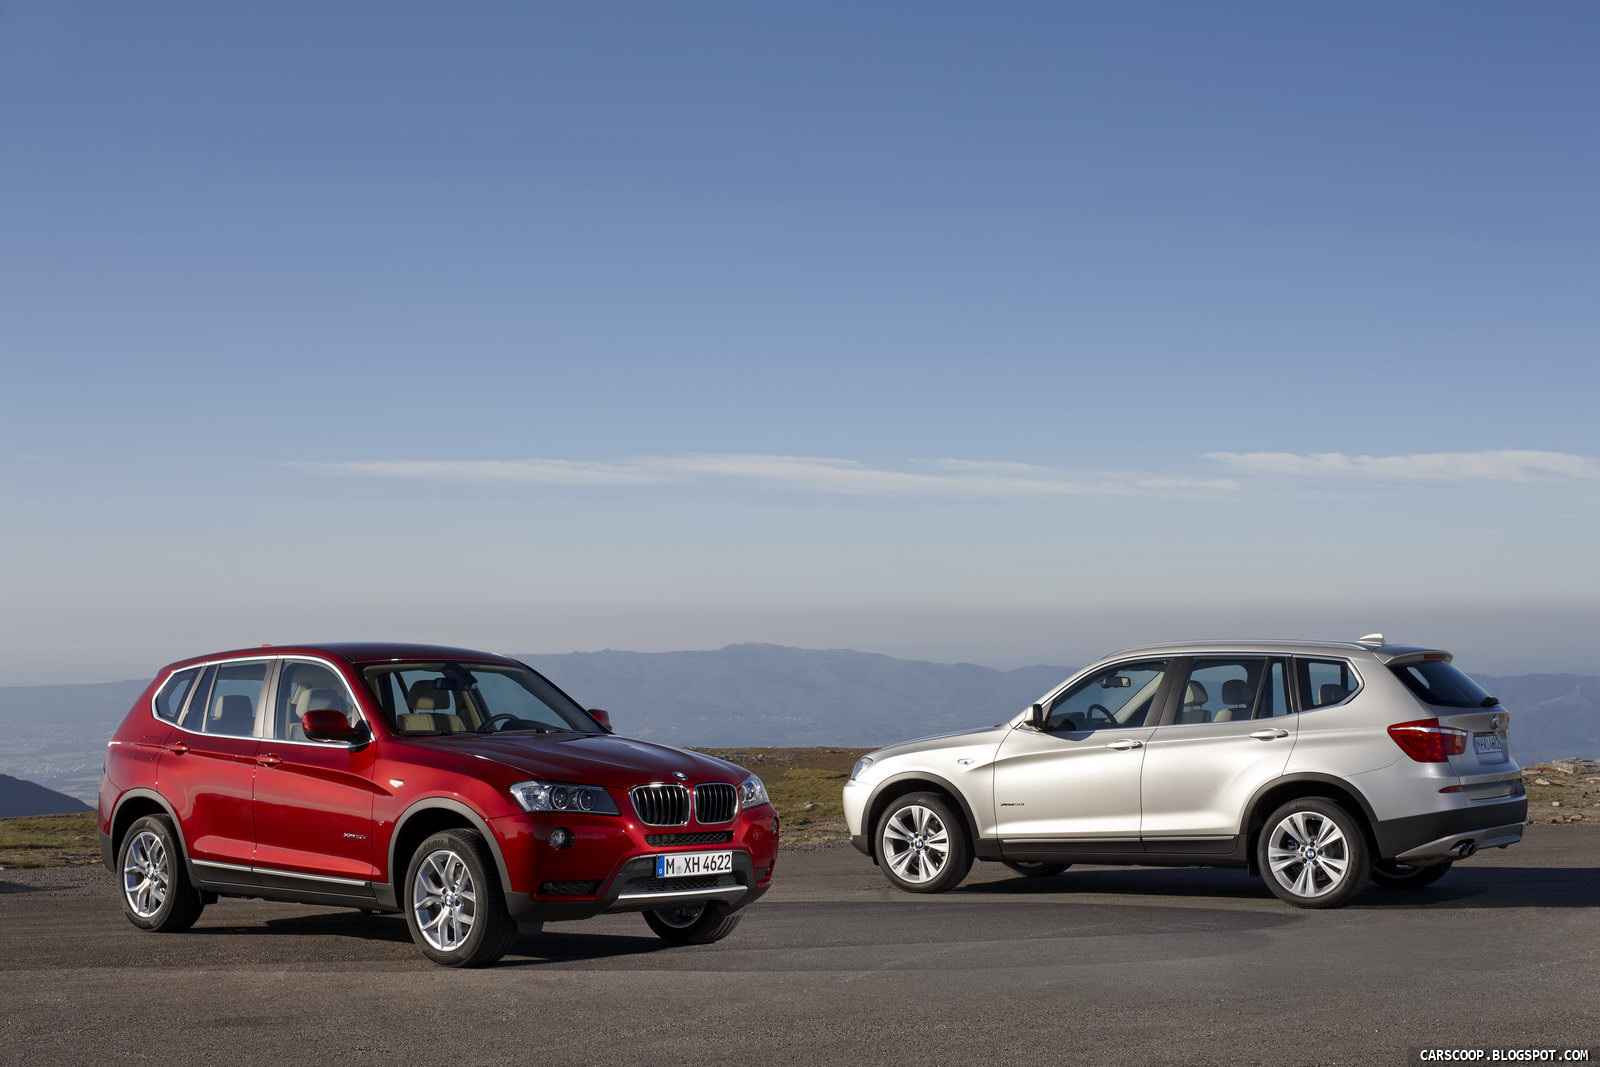 BMW X3 red